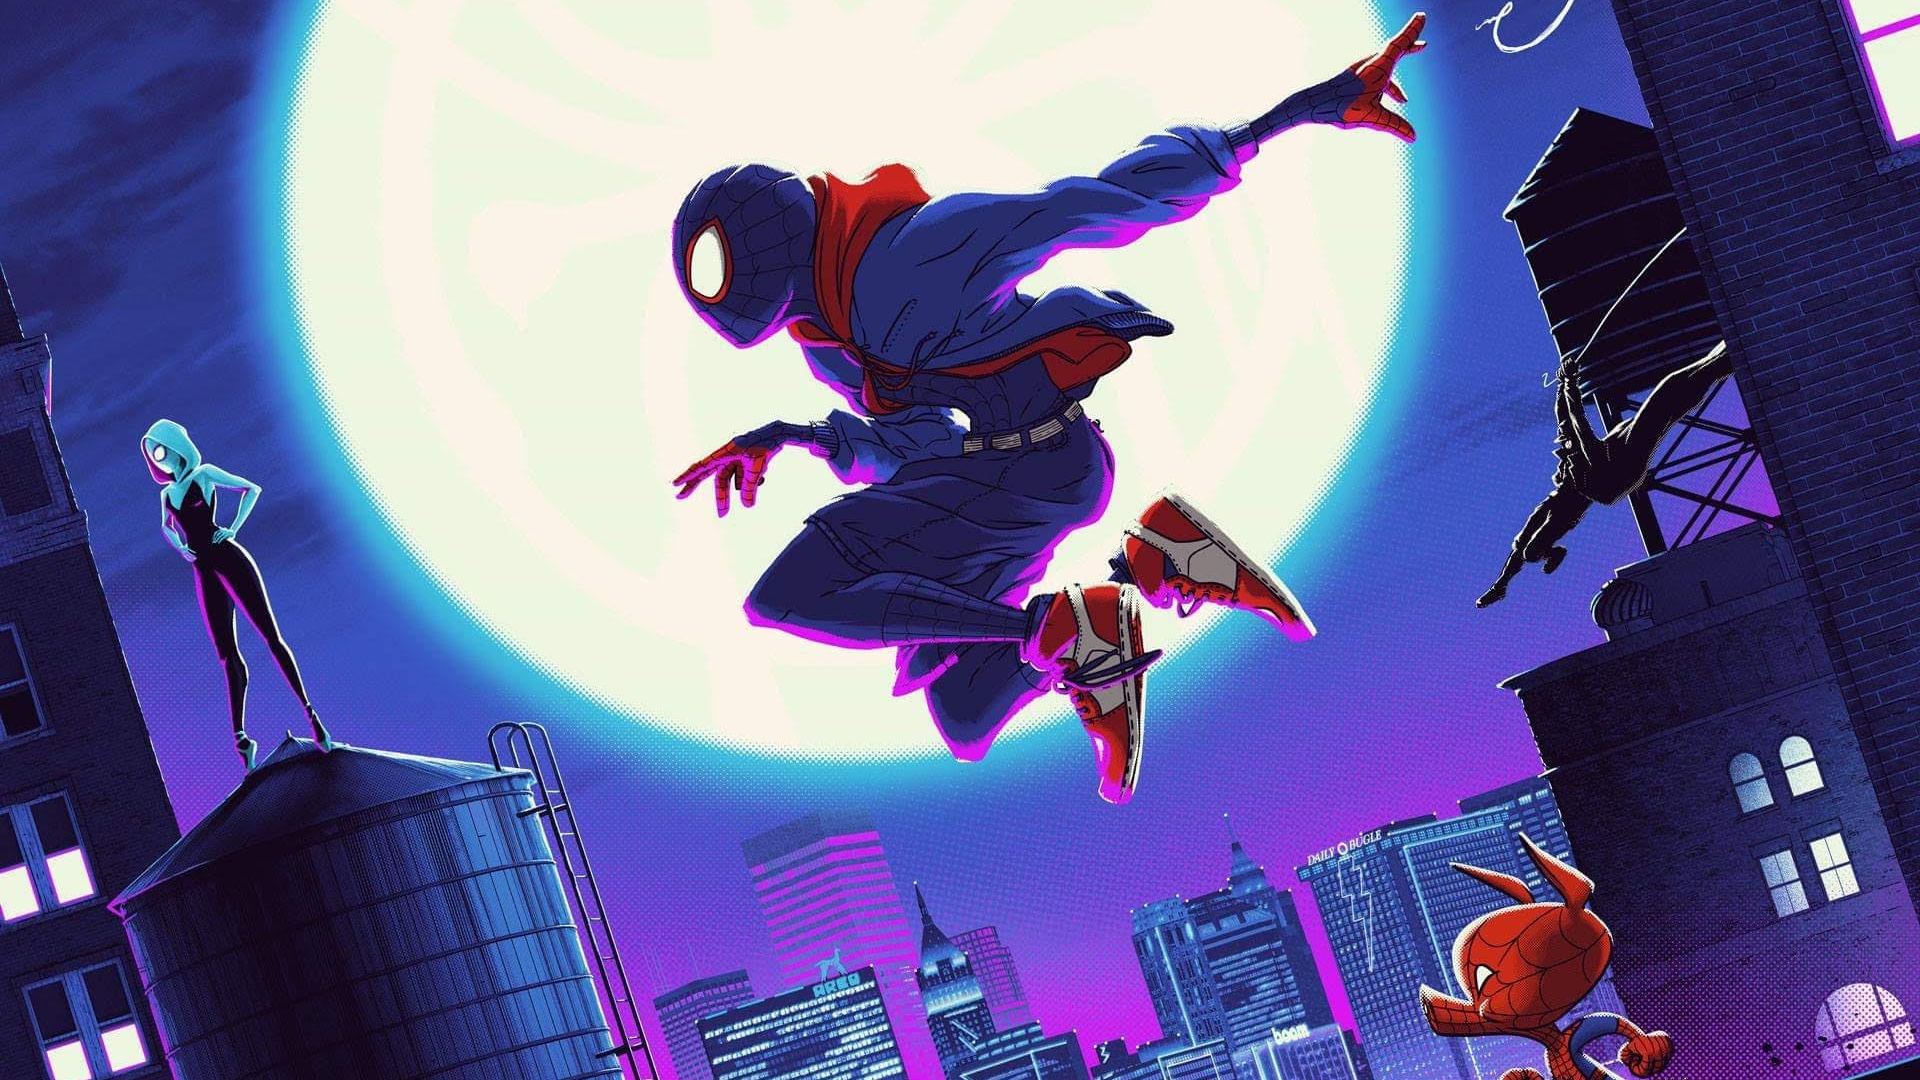 this-cool-spider-man-into-the-spider-verse-poster-art-from-matt-ferguson-glows-in-the-dark-social.jpg